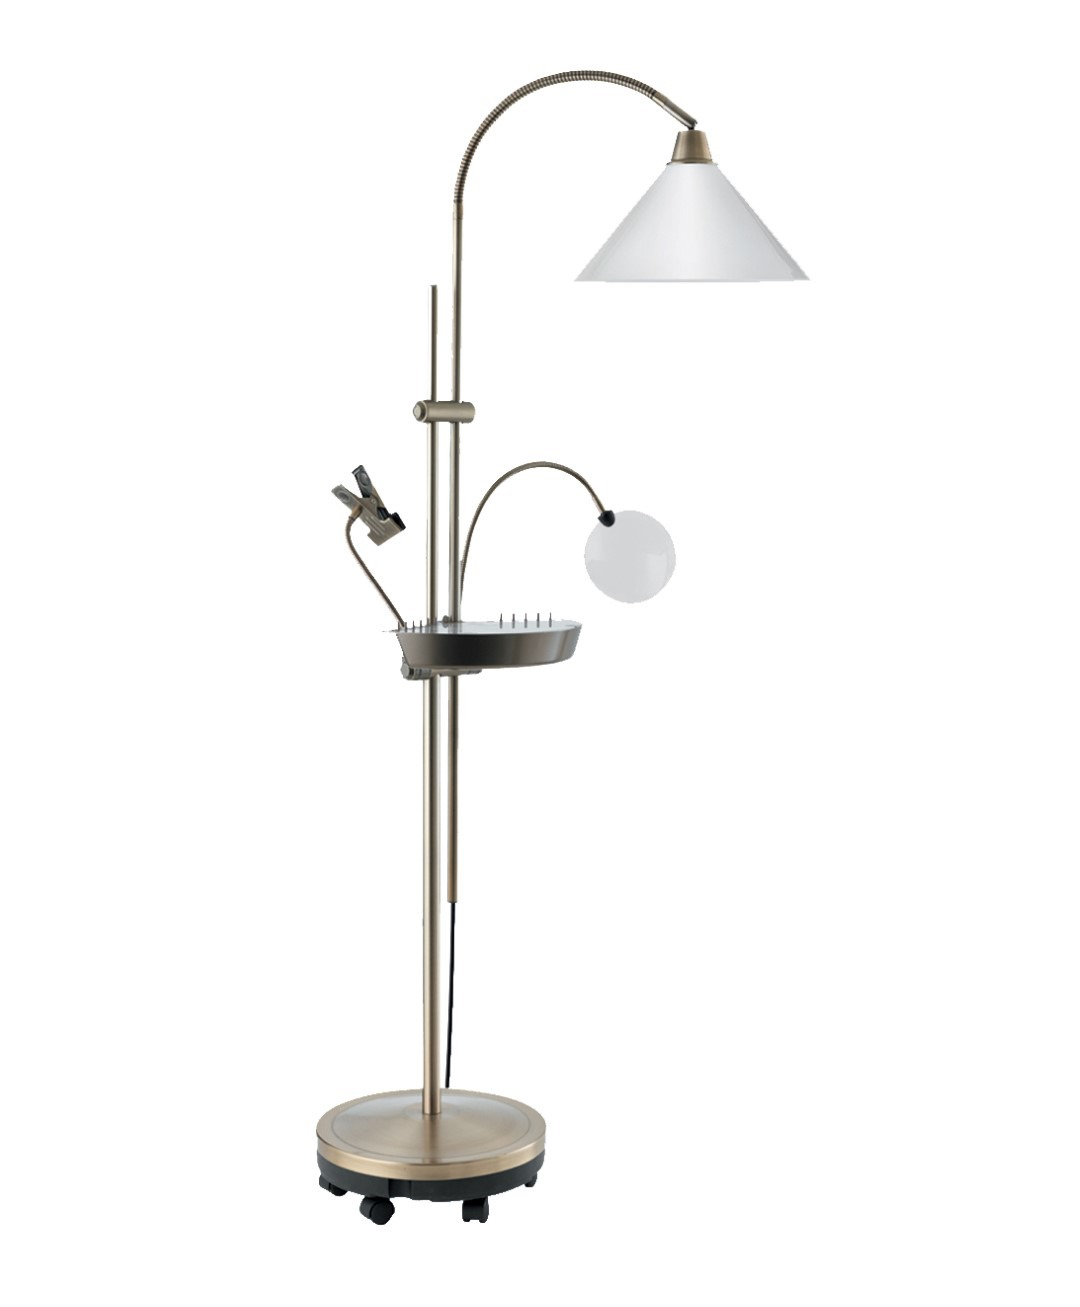 Daylight D21098 Ultimate Floorstanding Lamp throughout dimensions 1080 X 1307